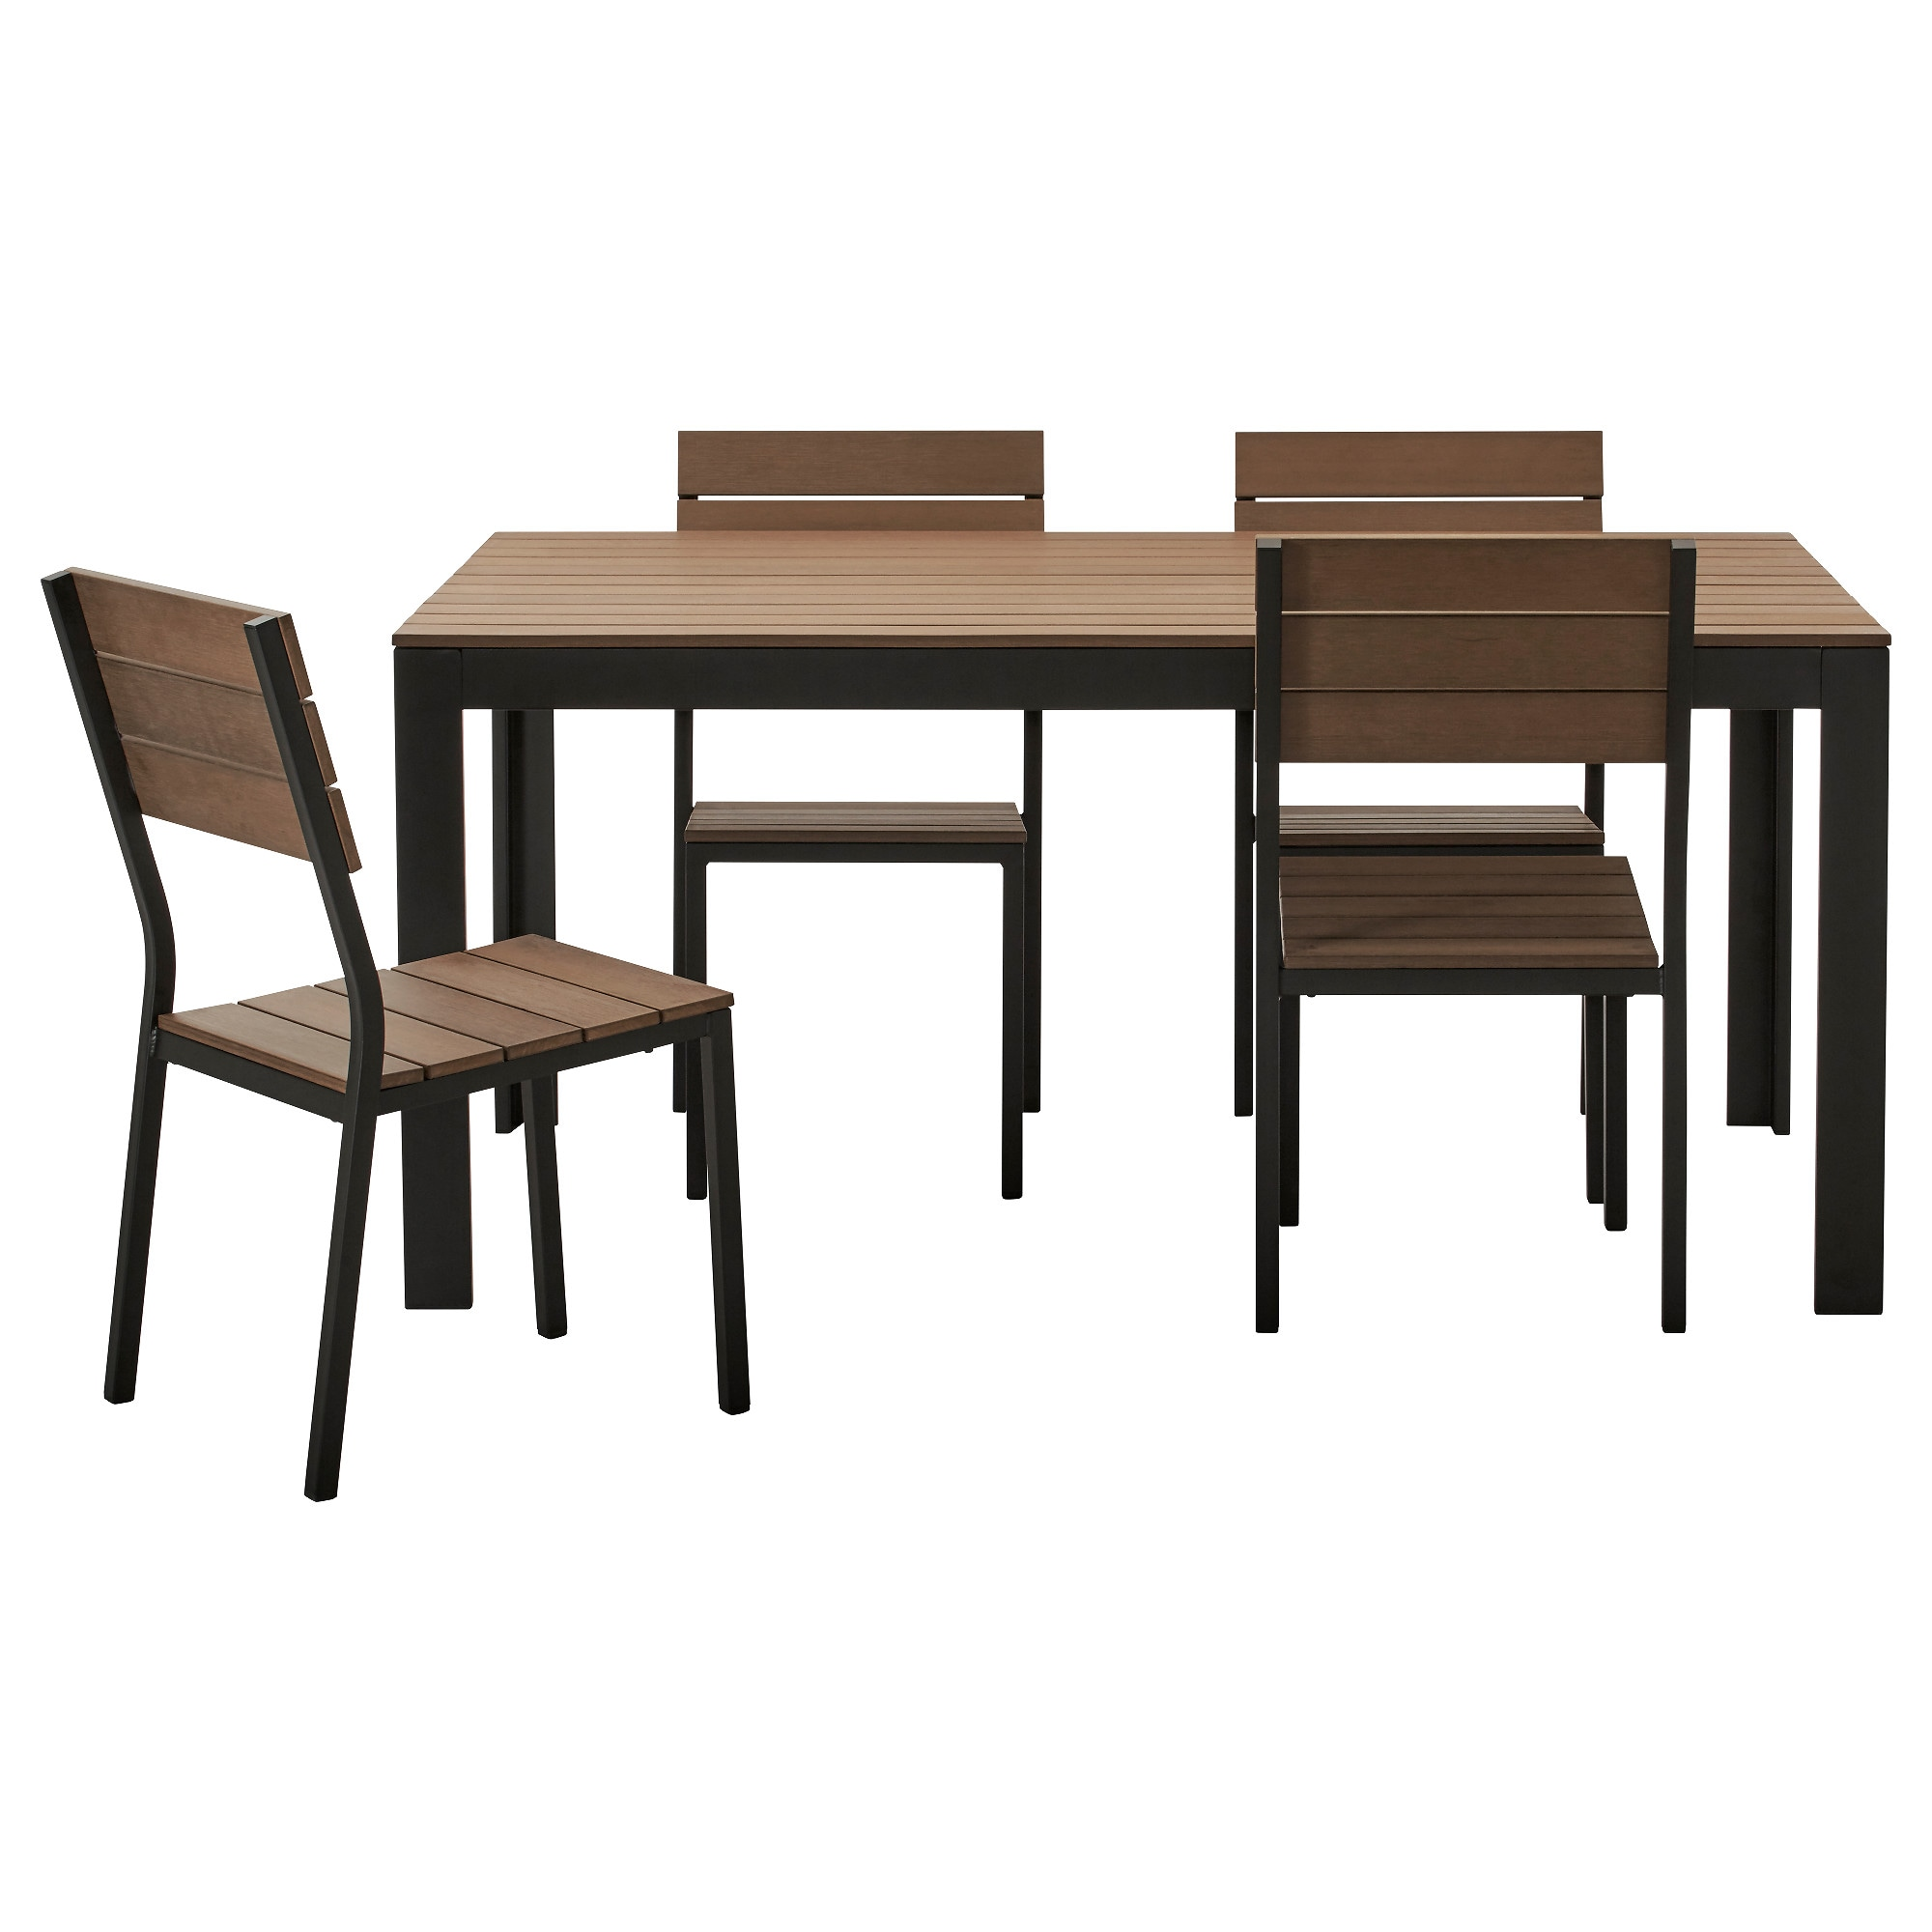 FALSTER table and 4 chairs outdoor black brown  sc 1 st  Ikea : ikea falster chaise - Sectionals, Sofas & Couches